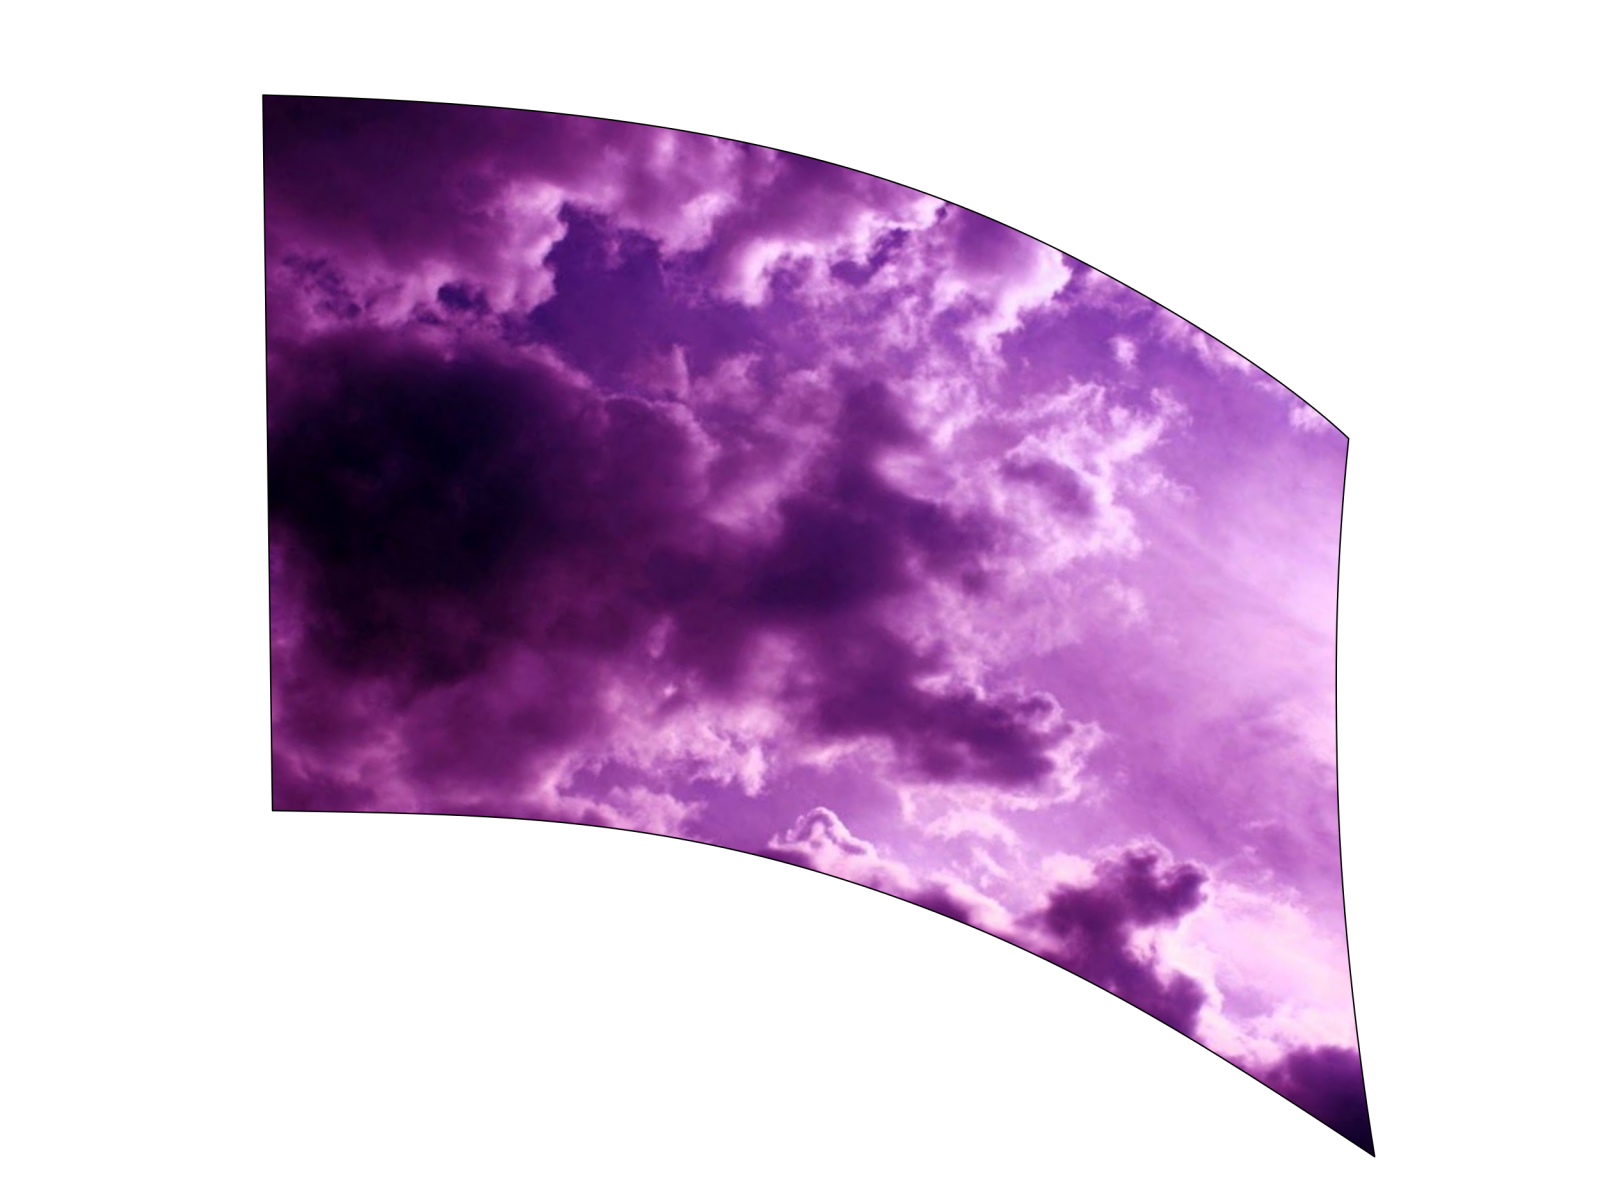 050311s - 36x52 Standard Purple Clouds 2